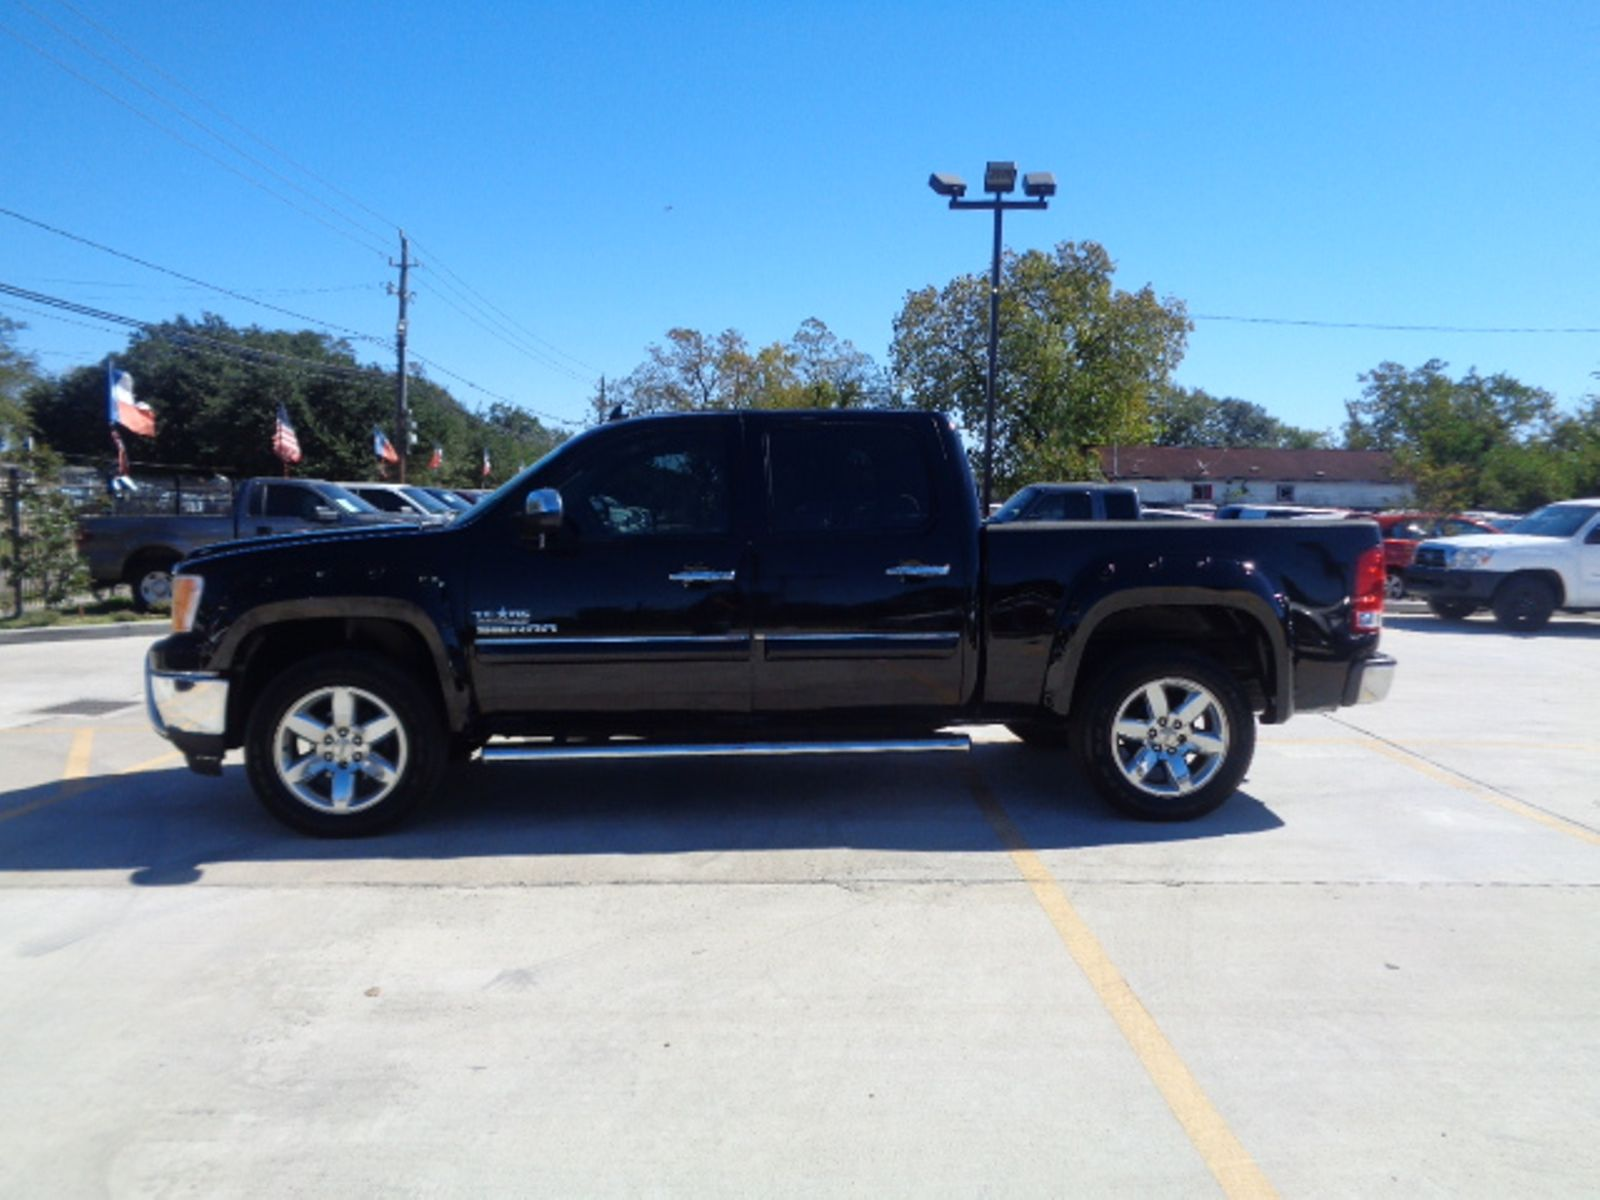 used photo hernando vehicle in vehiclesearchresults florida fl denali vehicles shop yukon county sierra hudson at gmc